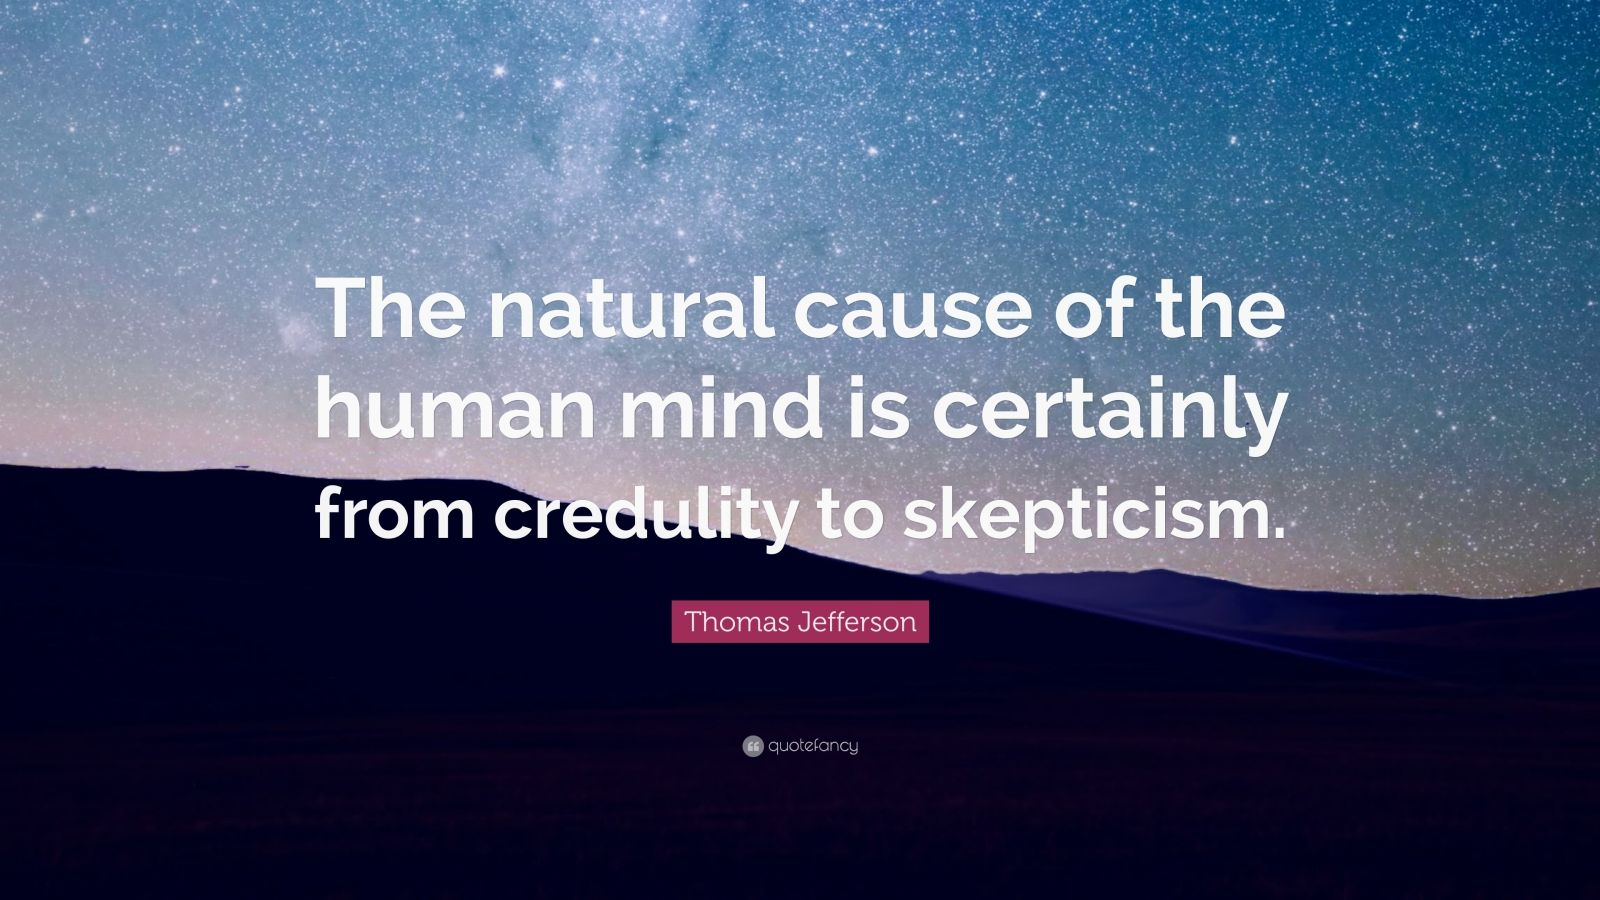 the human credulity at a young age Aristotle was orphaned at a young age the human soul incorporates the powers of the other kinds: wishful thinking and credulity amounting to downright.